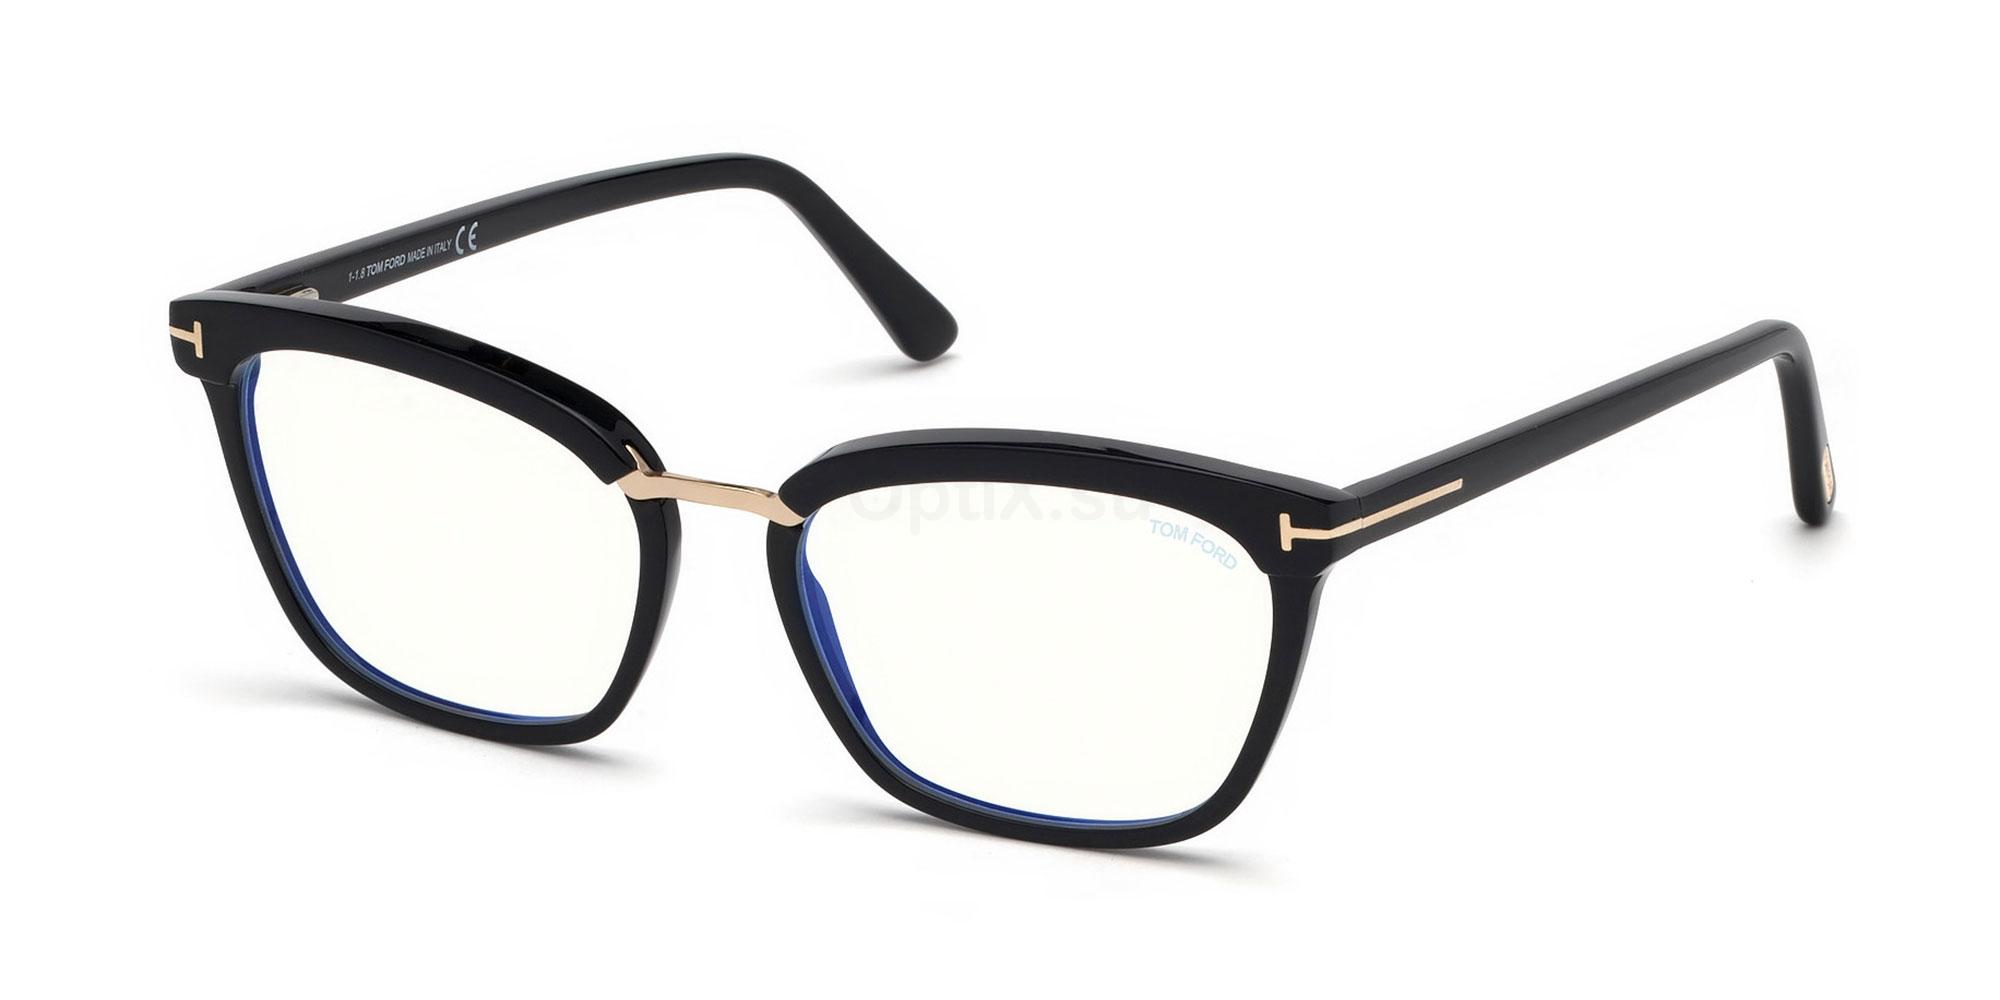 001 FT5550-B Glasses, Tom Ford